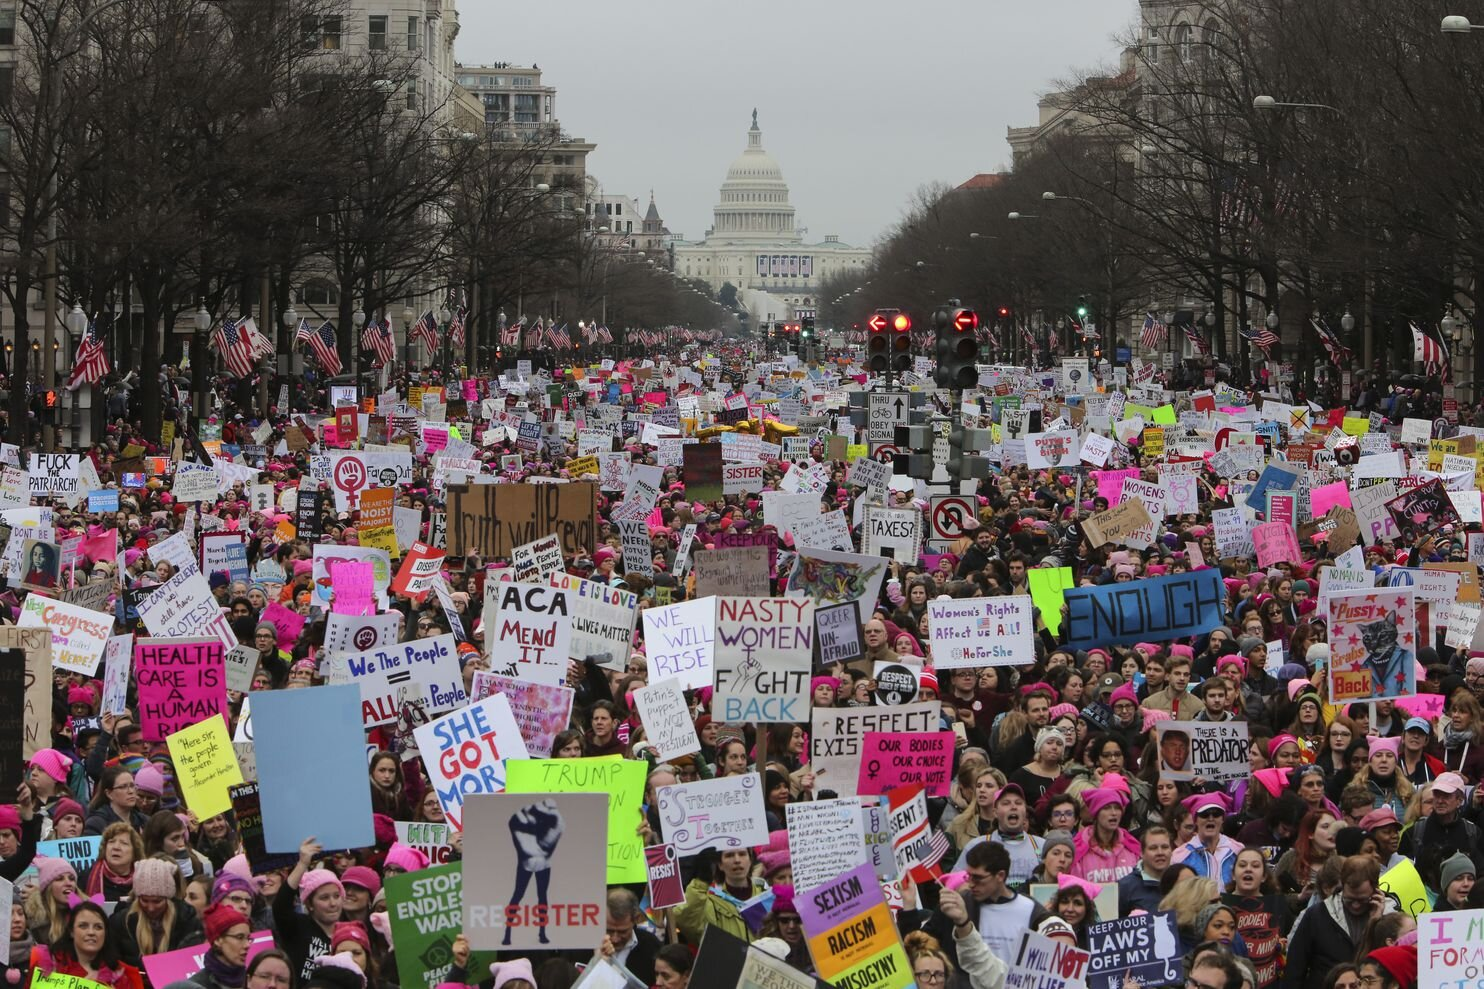 With the Capitol in the background, a crowd fills a street in the District during the Women's March on Jan. 21, 2017. (Oliver Contreras for The Washington Post)